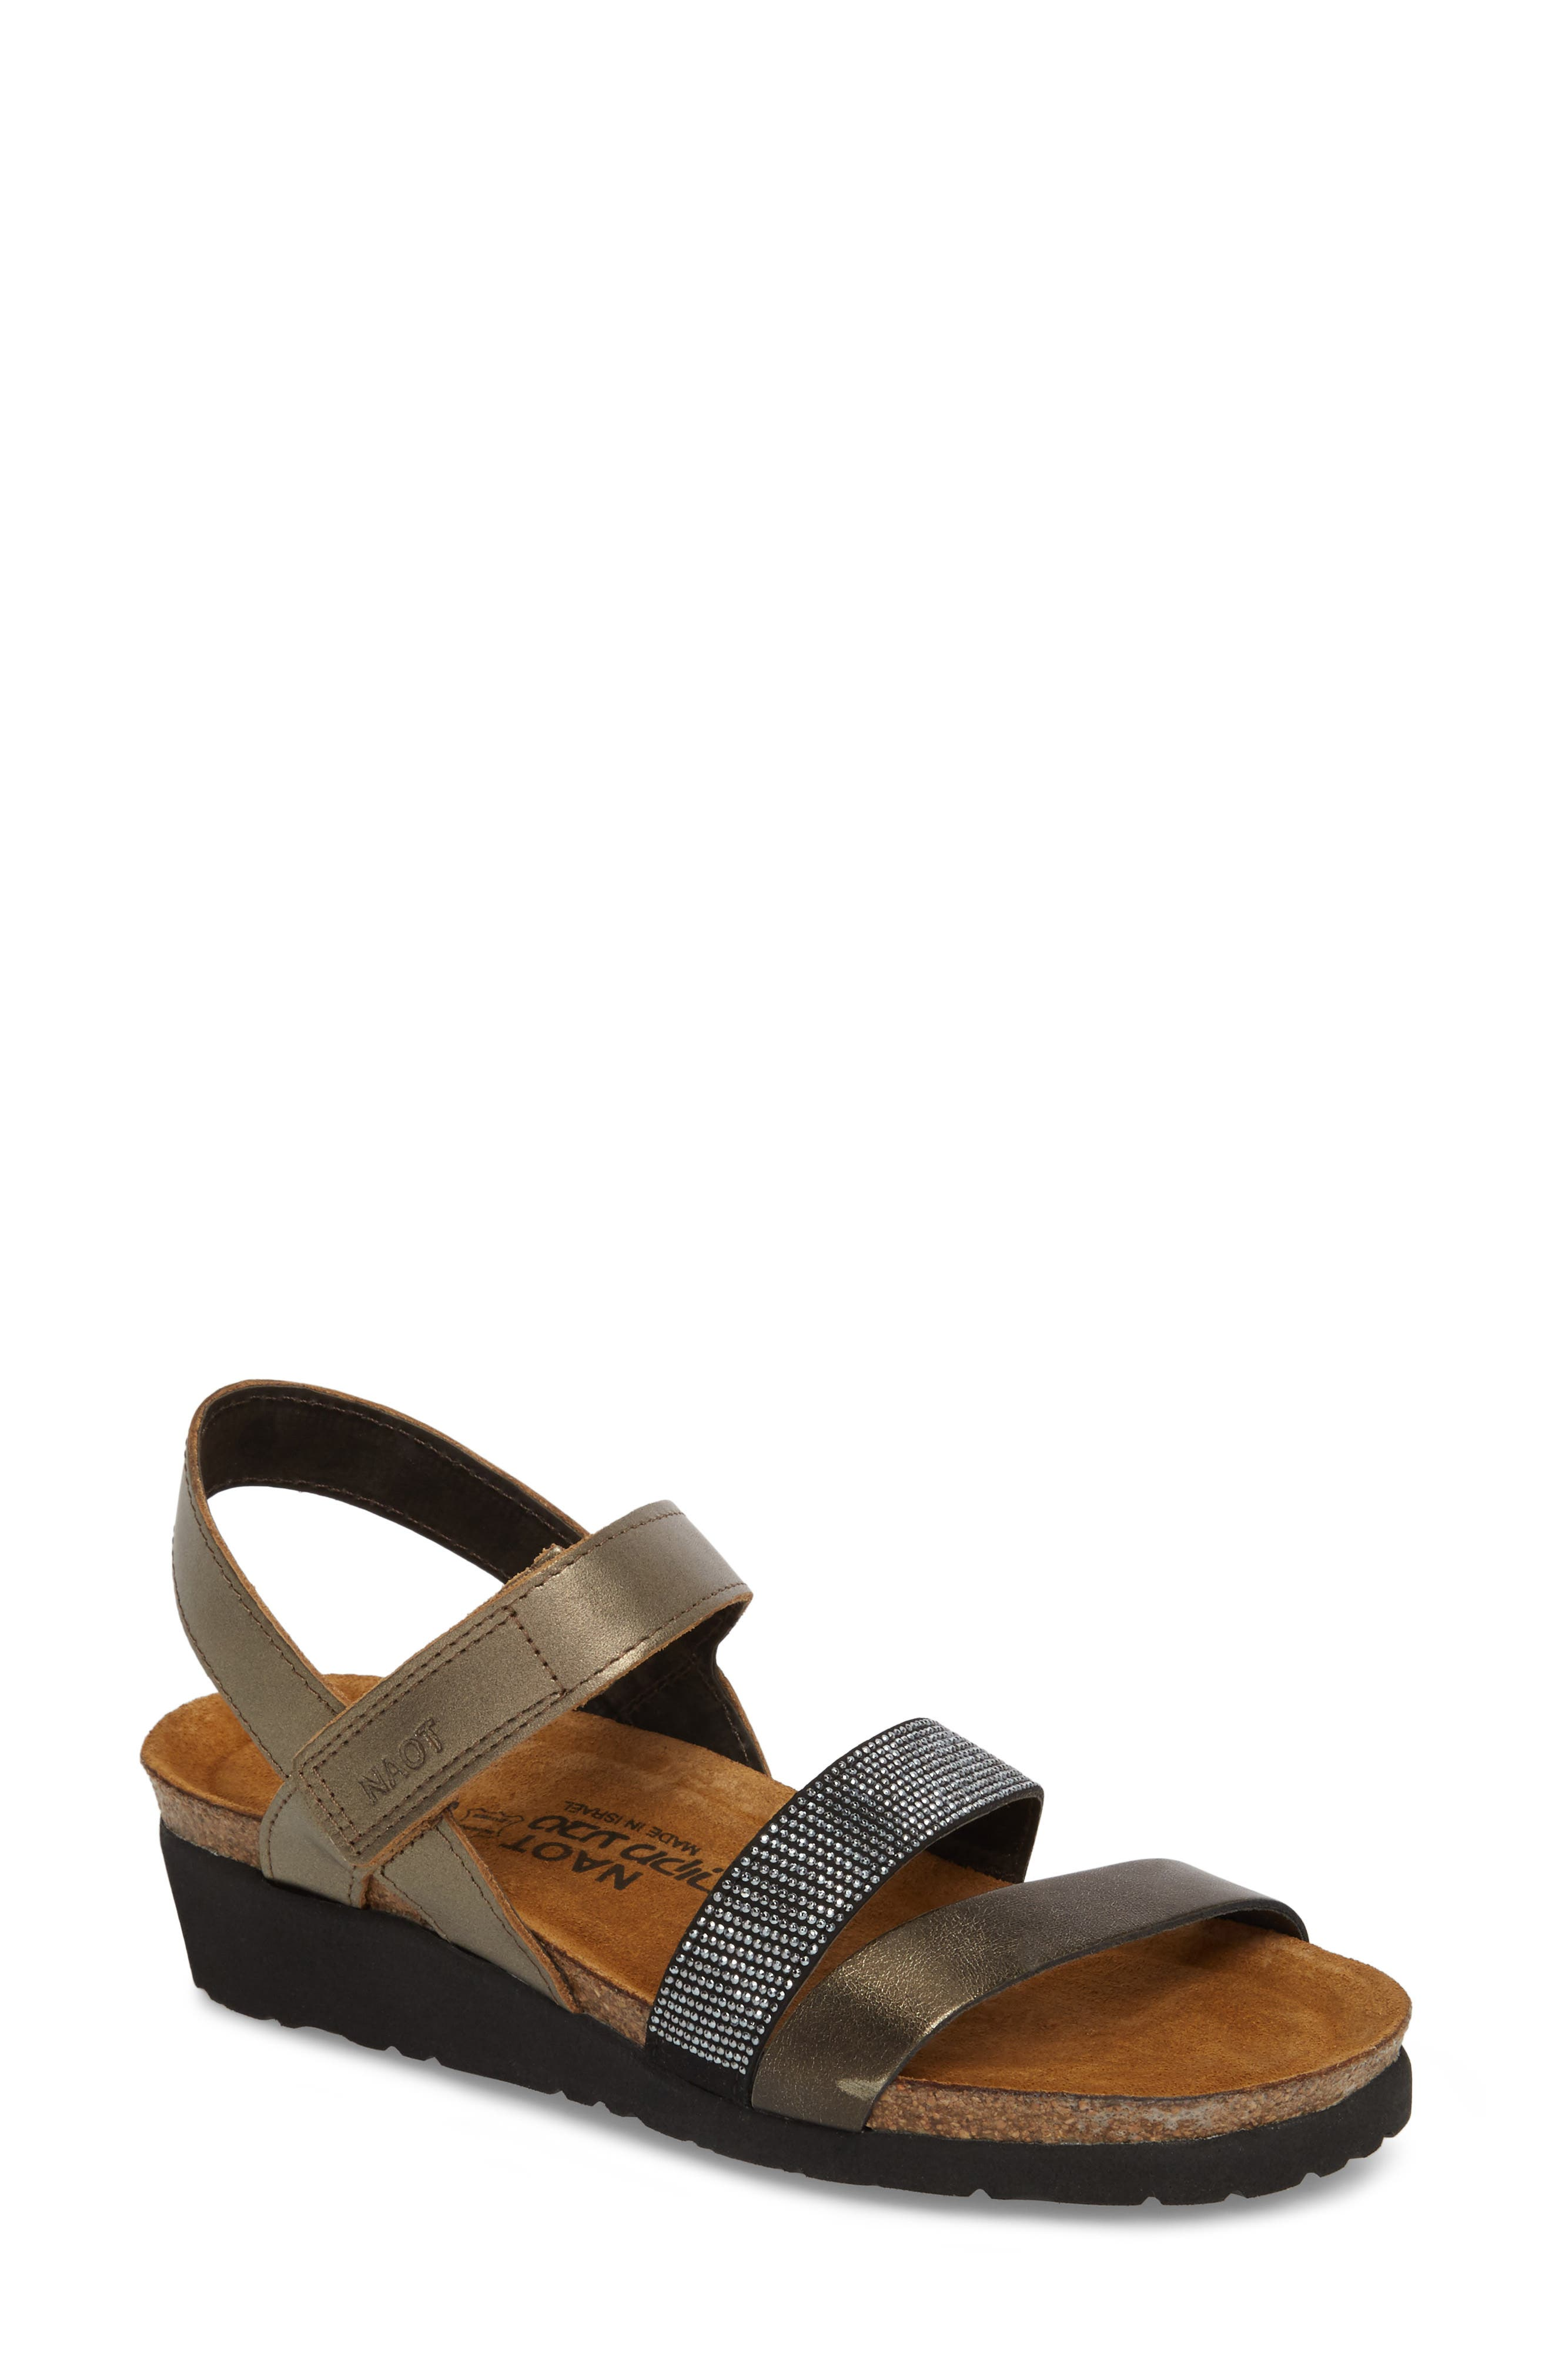 'Krista' Sandal,                             Main thumbnail 1, color,                             Pewter Leather